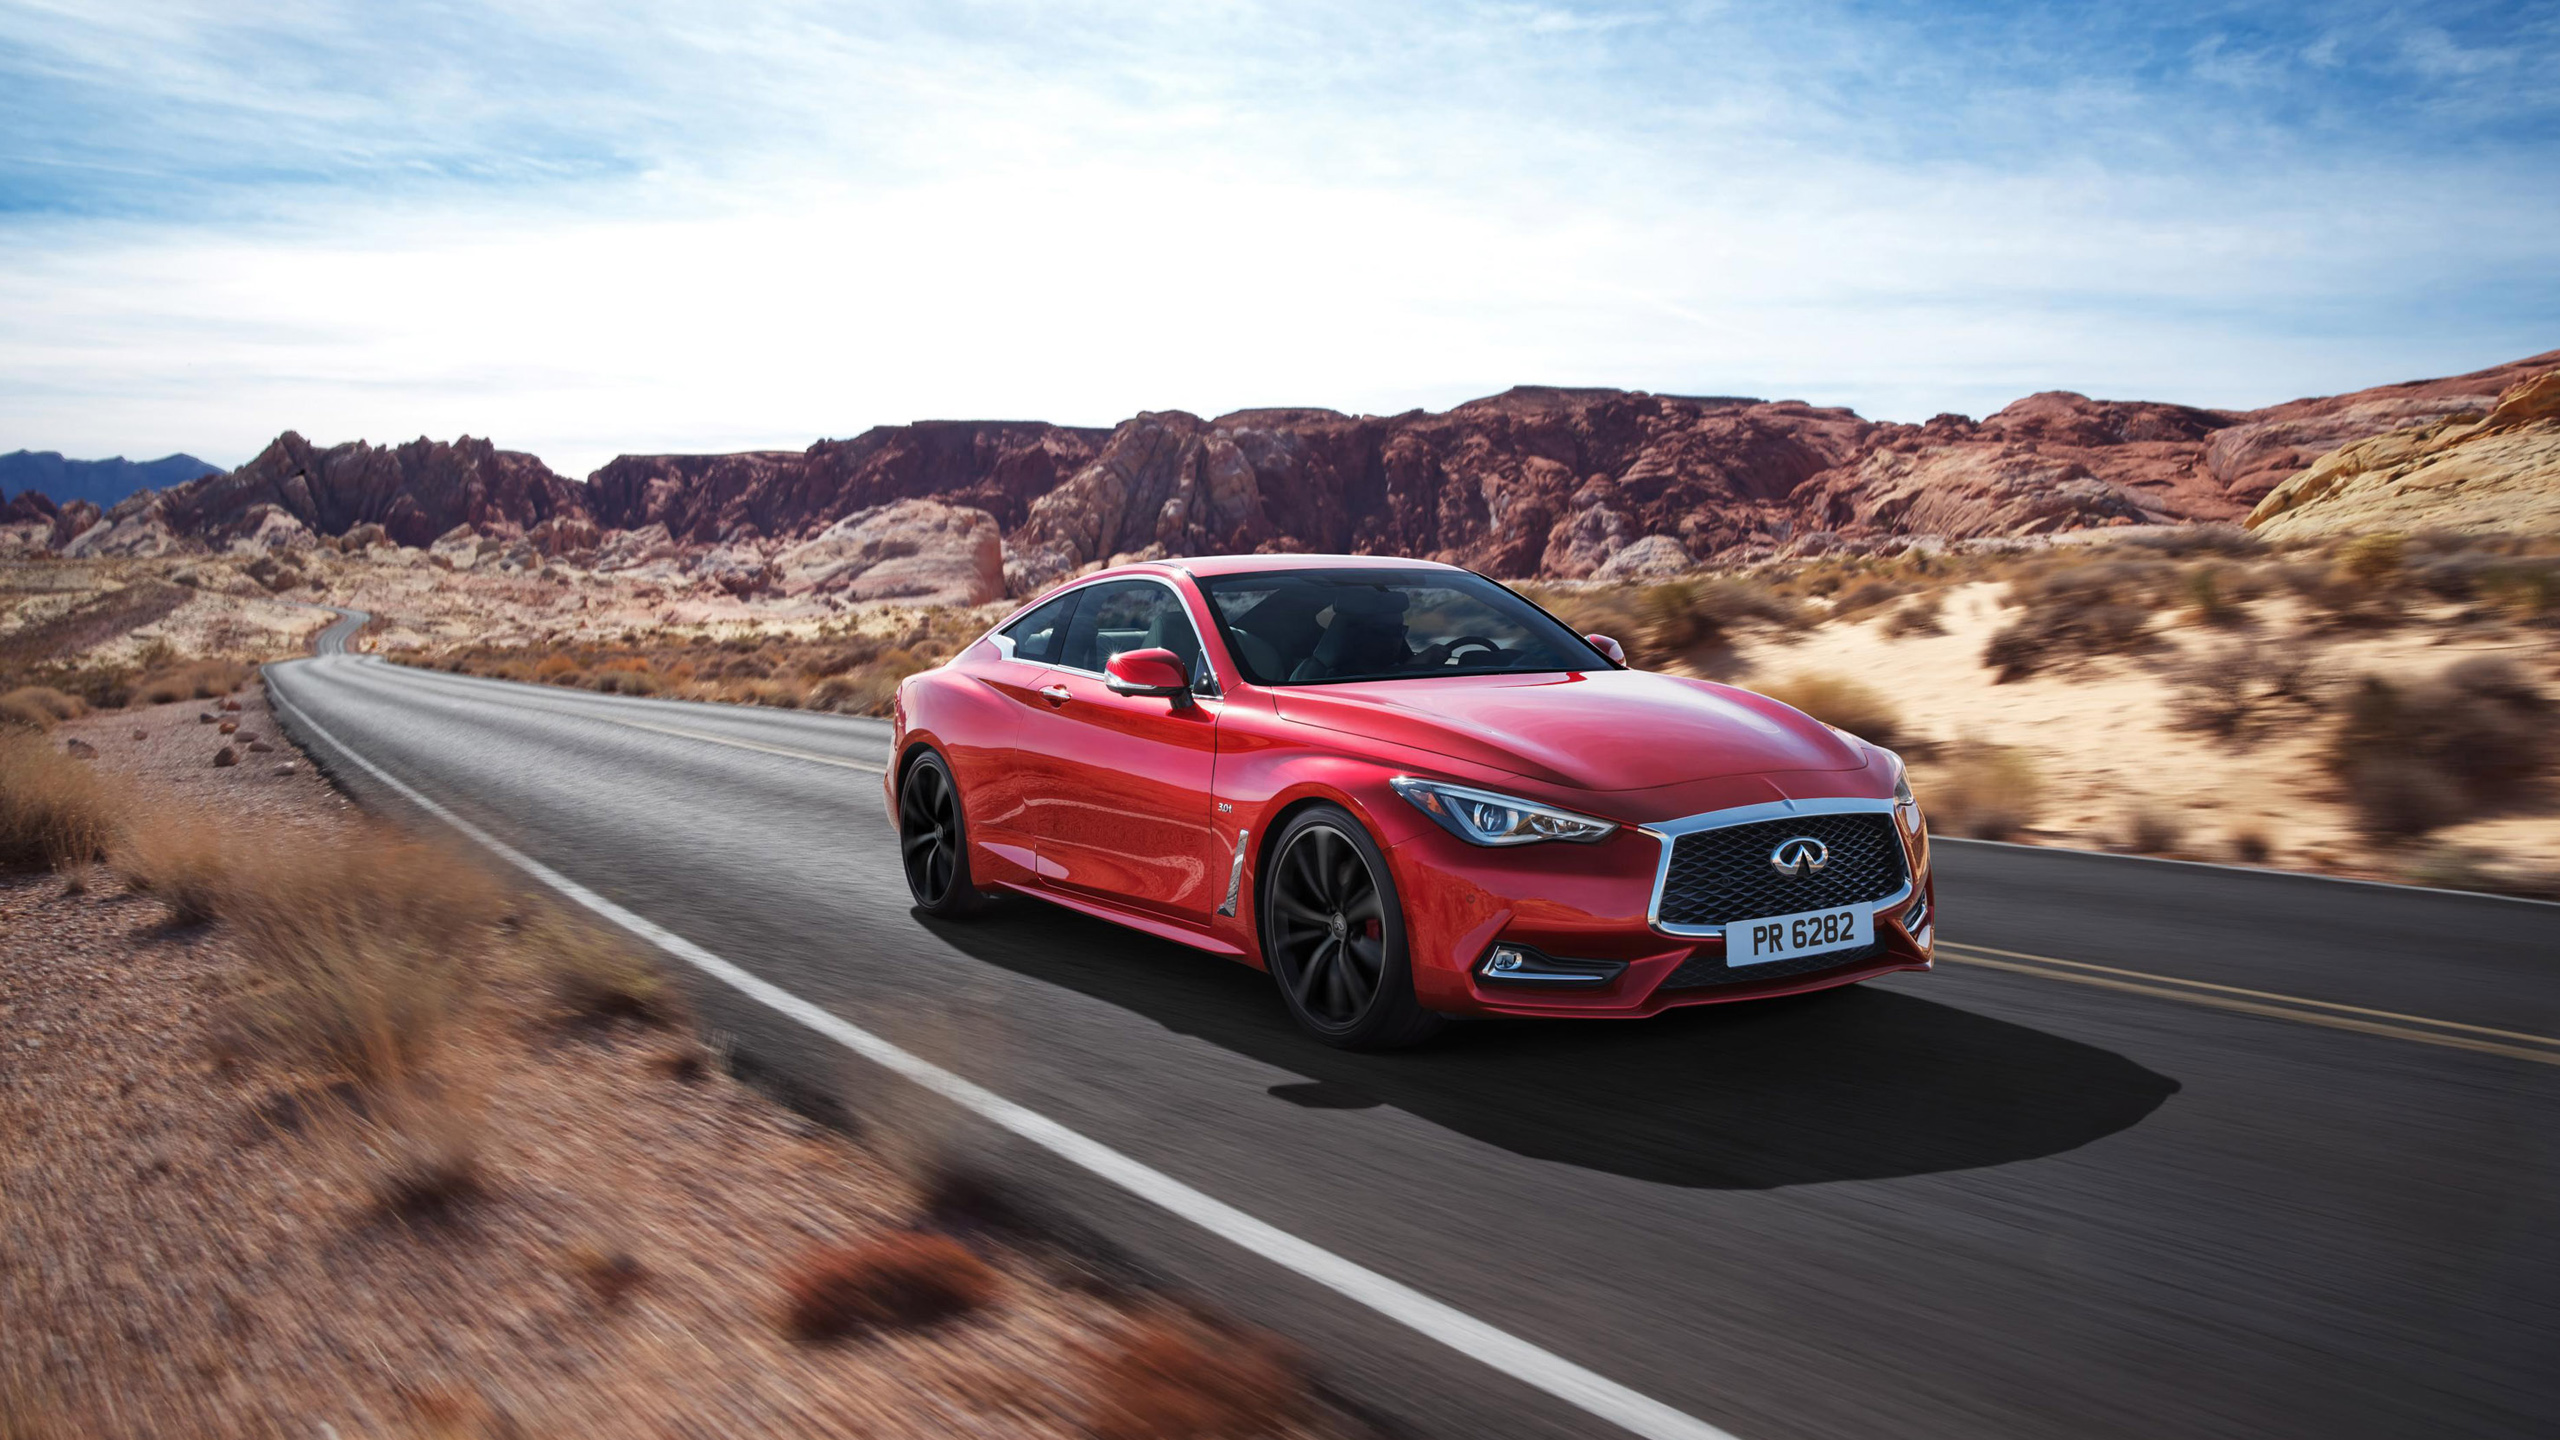 Infiniti Q60 Wallpapers and Background Images   stmednet 2560x1440